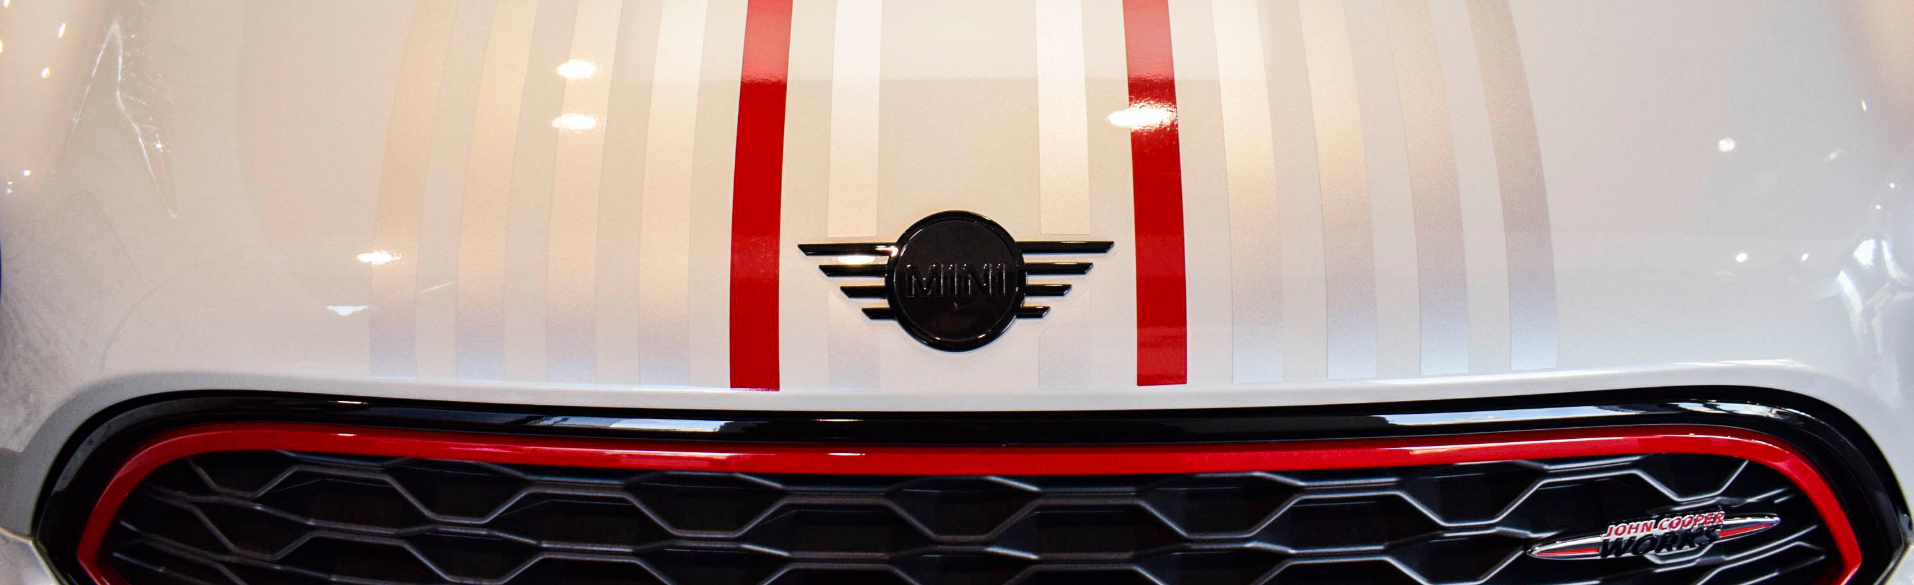 Countryman Bonnet Stripes